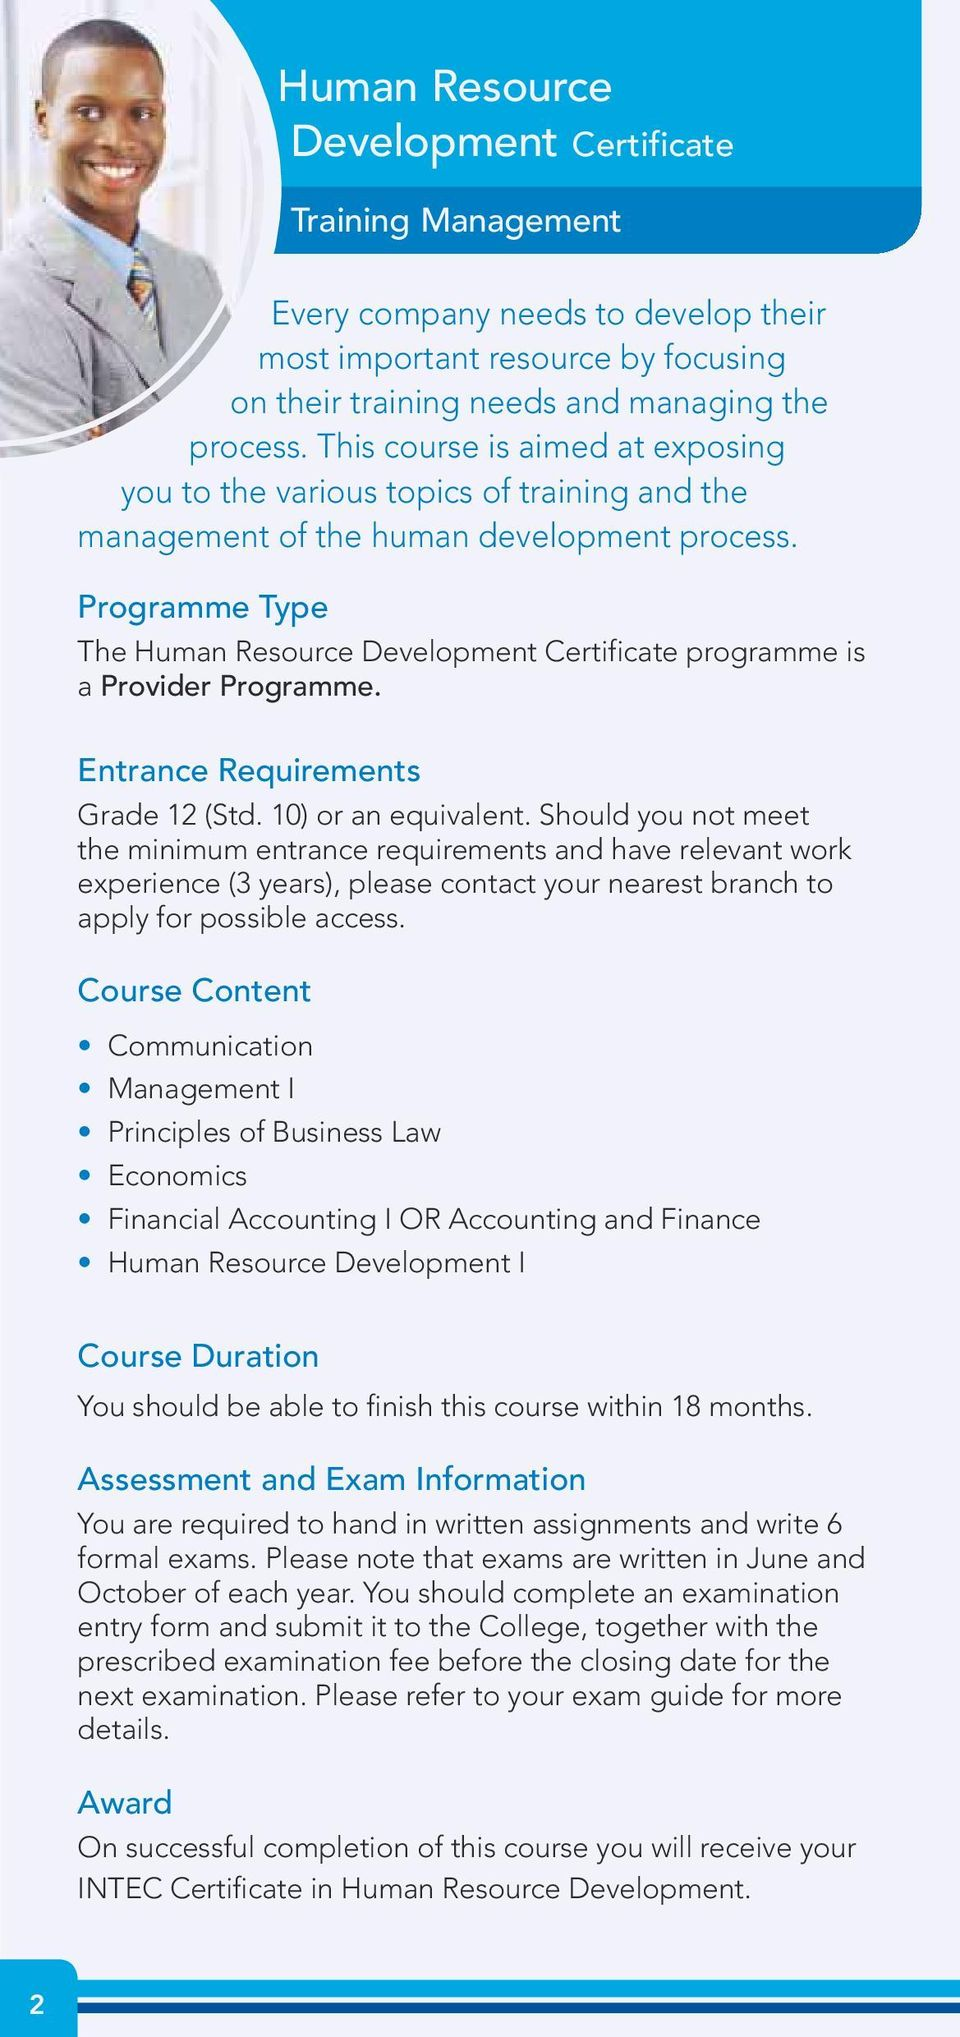 The Human Resource Development Certificate programme is a Provider Programme. Entrance Requirements Grade 12 (Std. 10) or an equivalent.